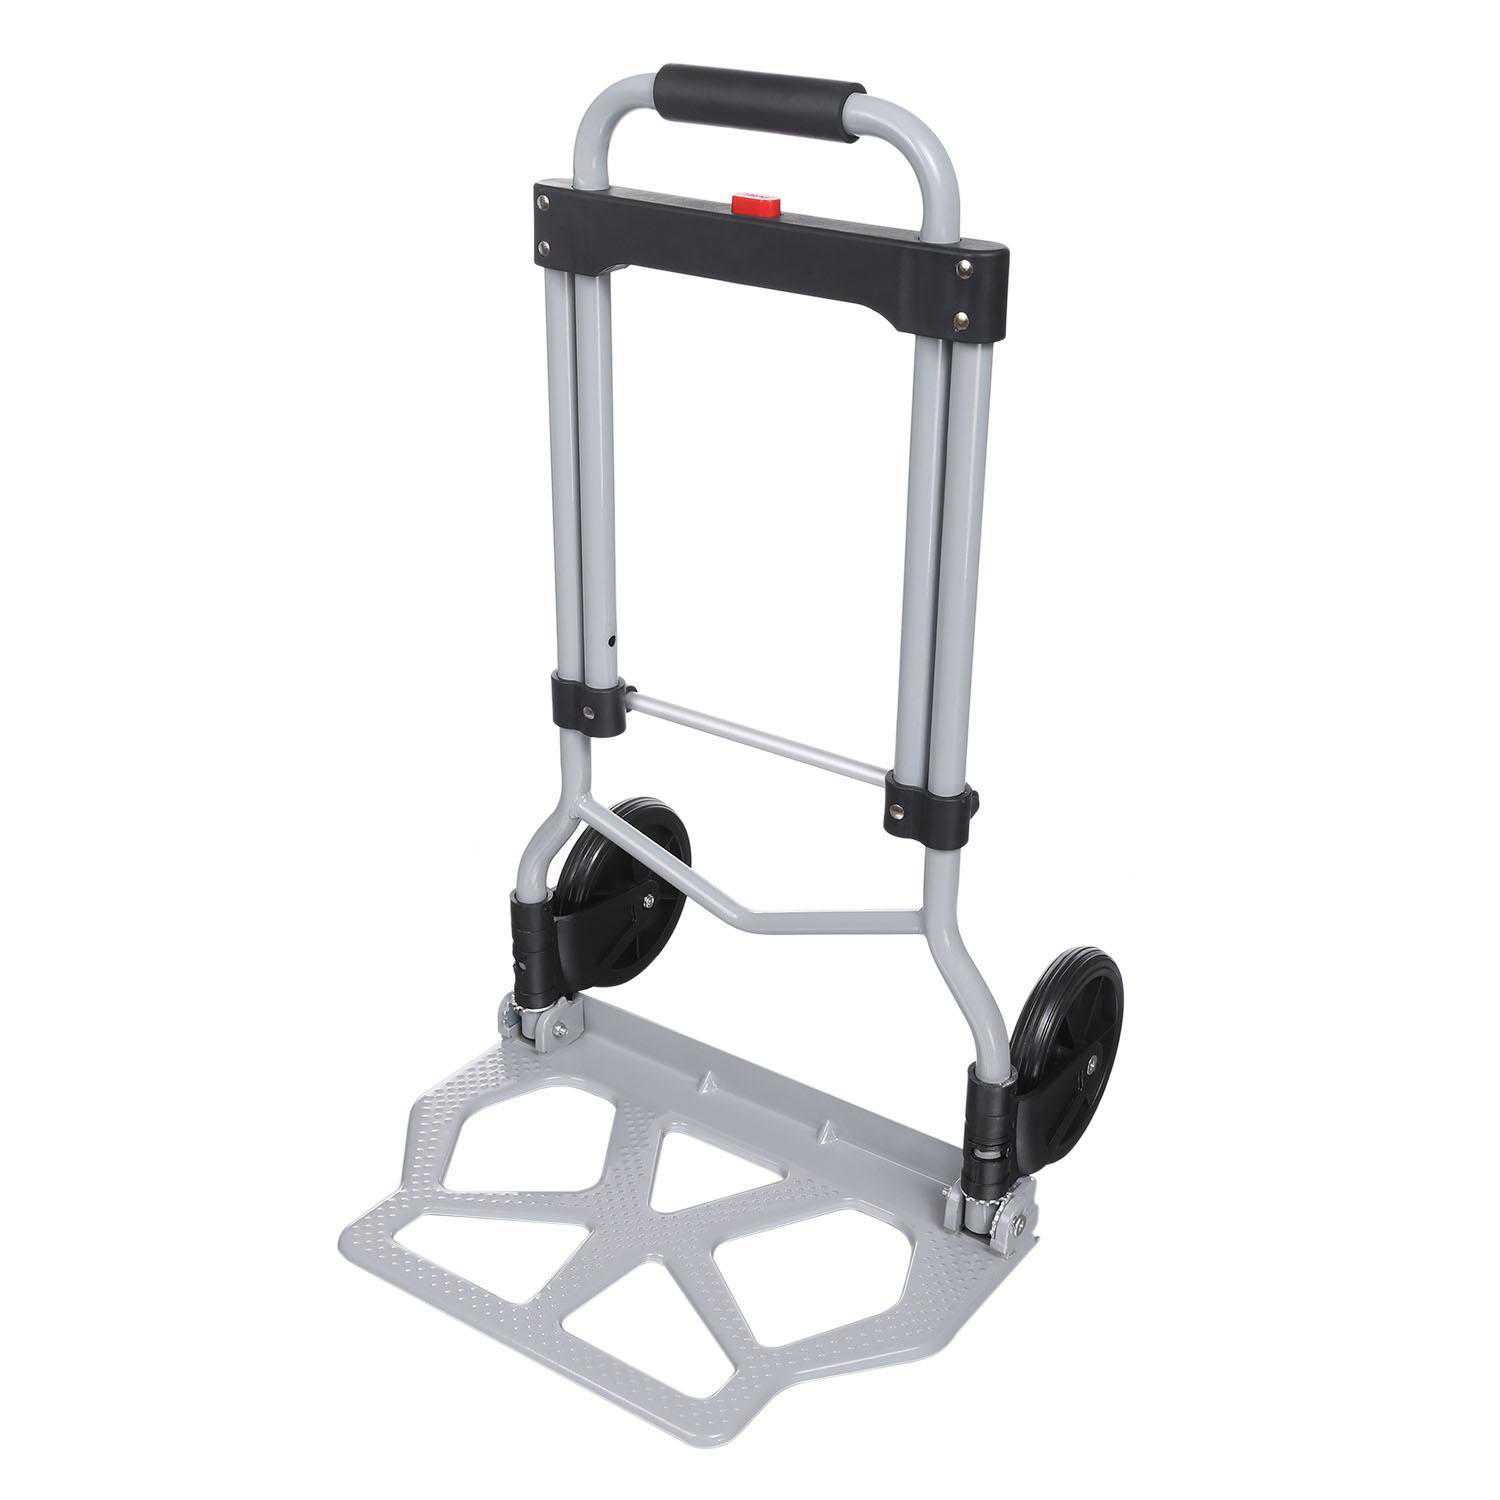 Elecmall Folding Hand Truck Dolly Luggage Carts, Silver, 220 lbs Capacity, Industrial/Travel/Shopping Elec